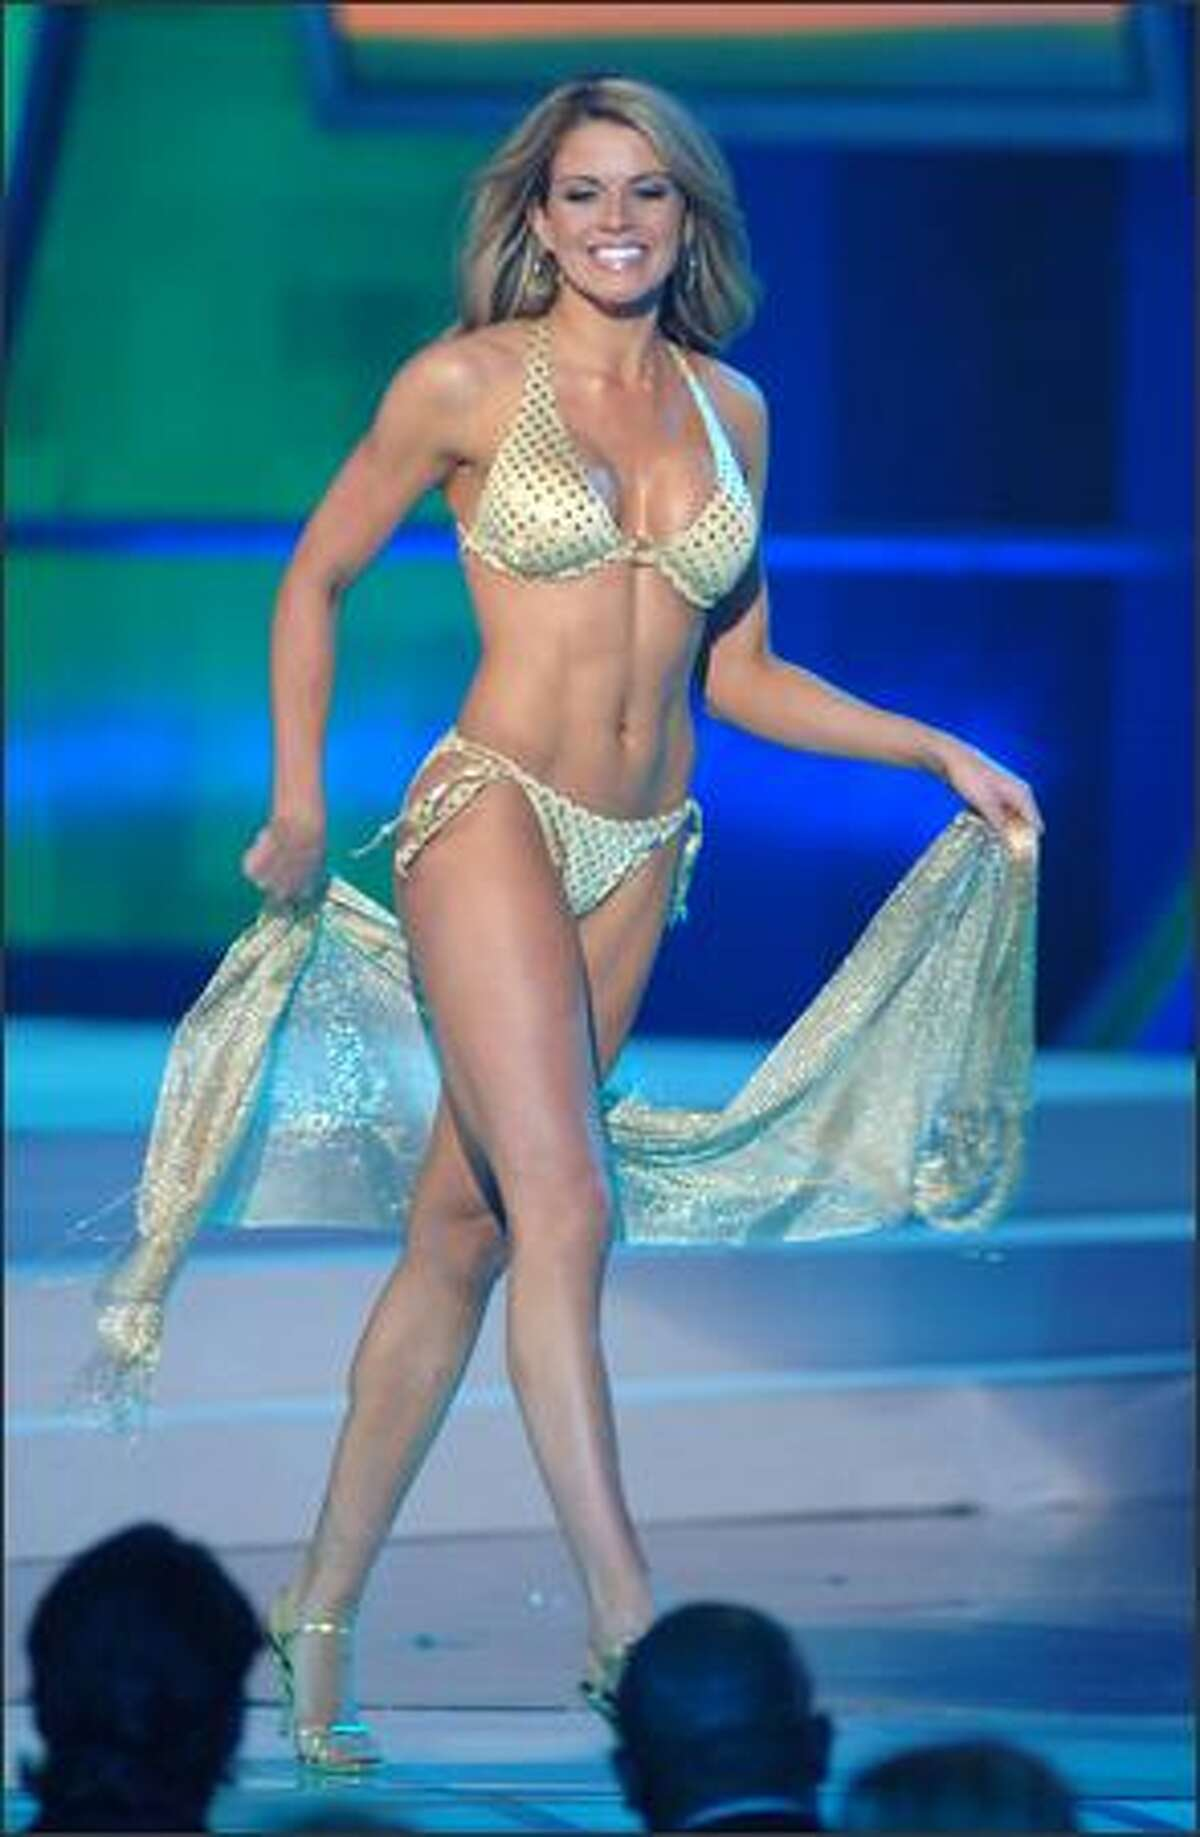 Wearing a swimsuit from BSC Swimwear Thailand and Steve Madden shoes, Leeann Tingley, Miss Rhode Island USA 2006, participates in the swimsuit portion of the Miss USA competition at the 1st Mariner Arena in Baltimore.